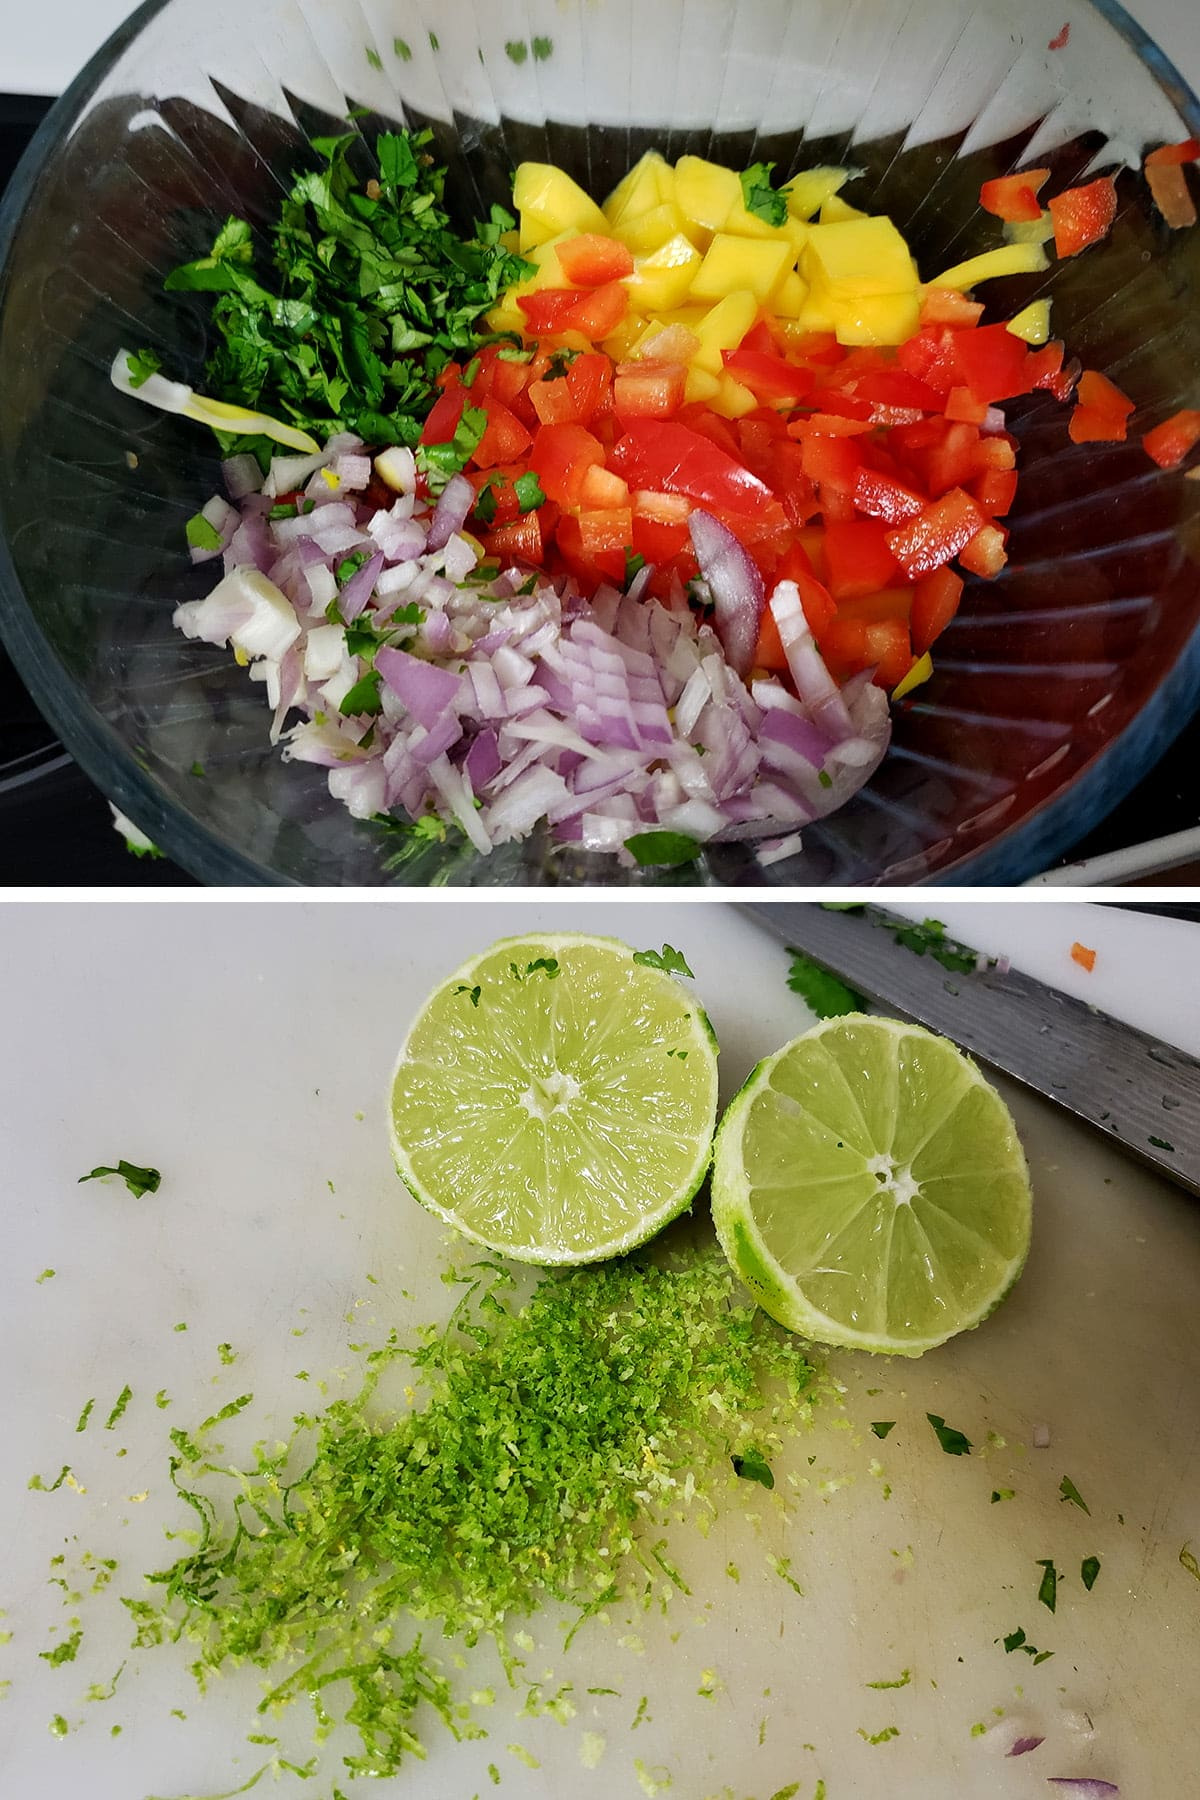 A two part image showing a bowl of chopped mango, red pepper, red onion, and cilantro on top, and a cutting board with lime zest and two lime halves on the bottom.